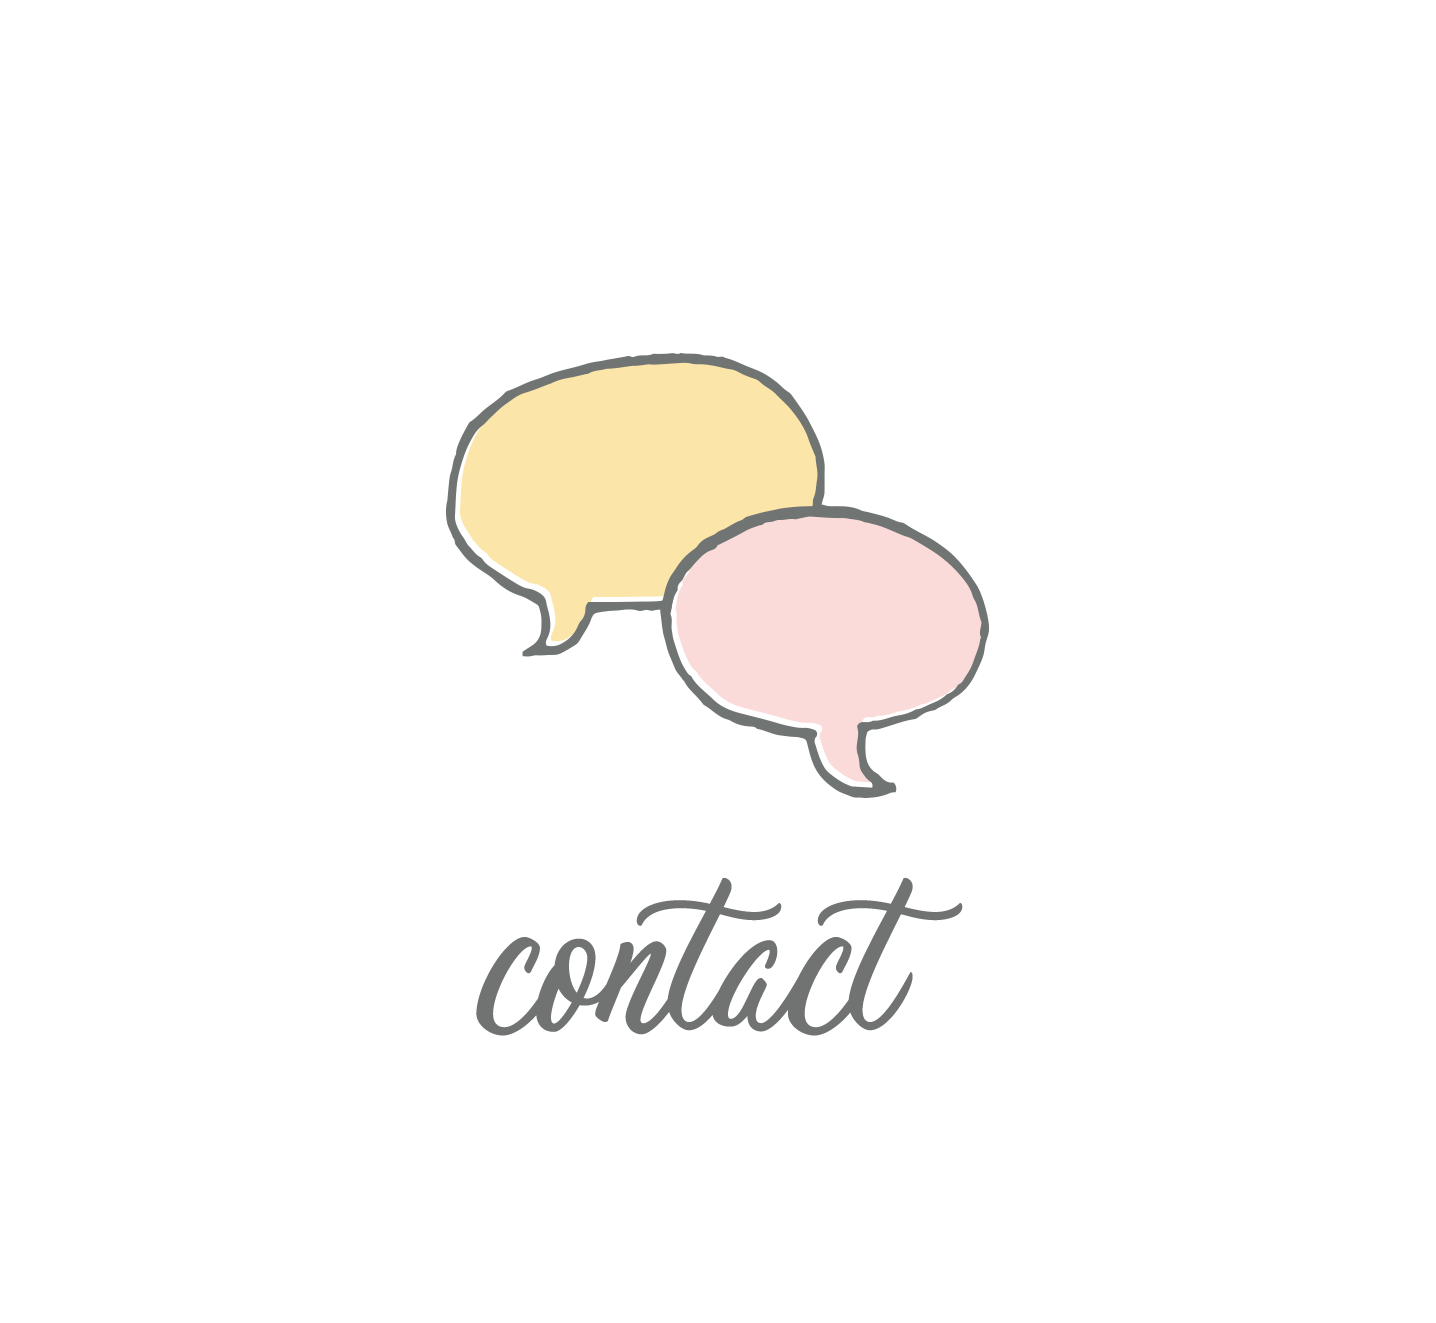 MM_BTNS_ICON_v4_contact.png